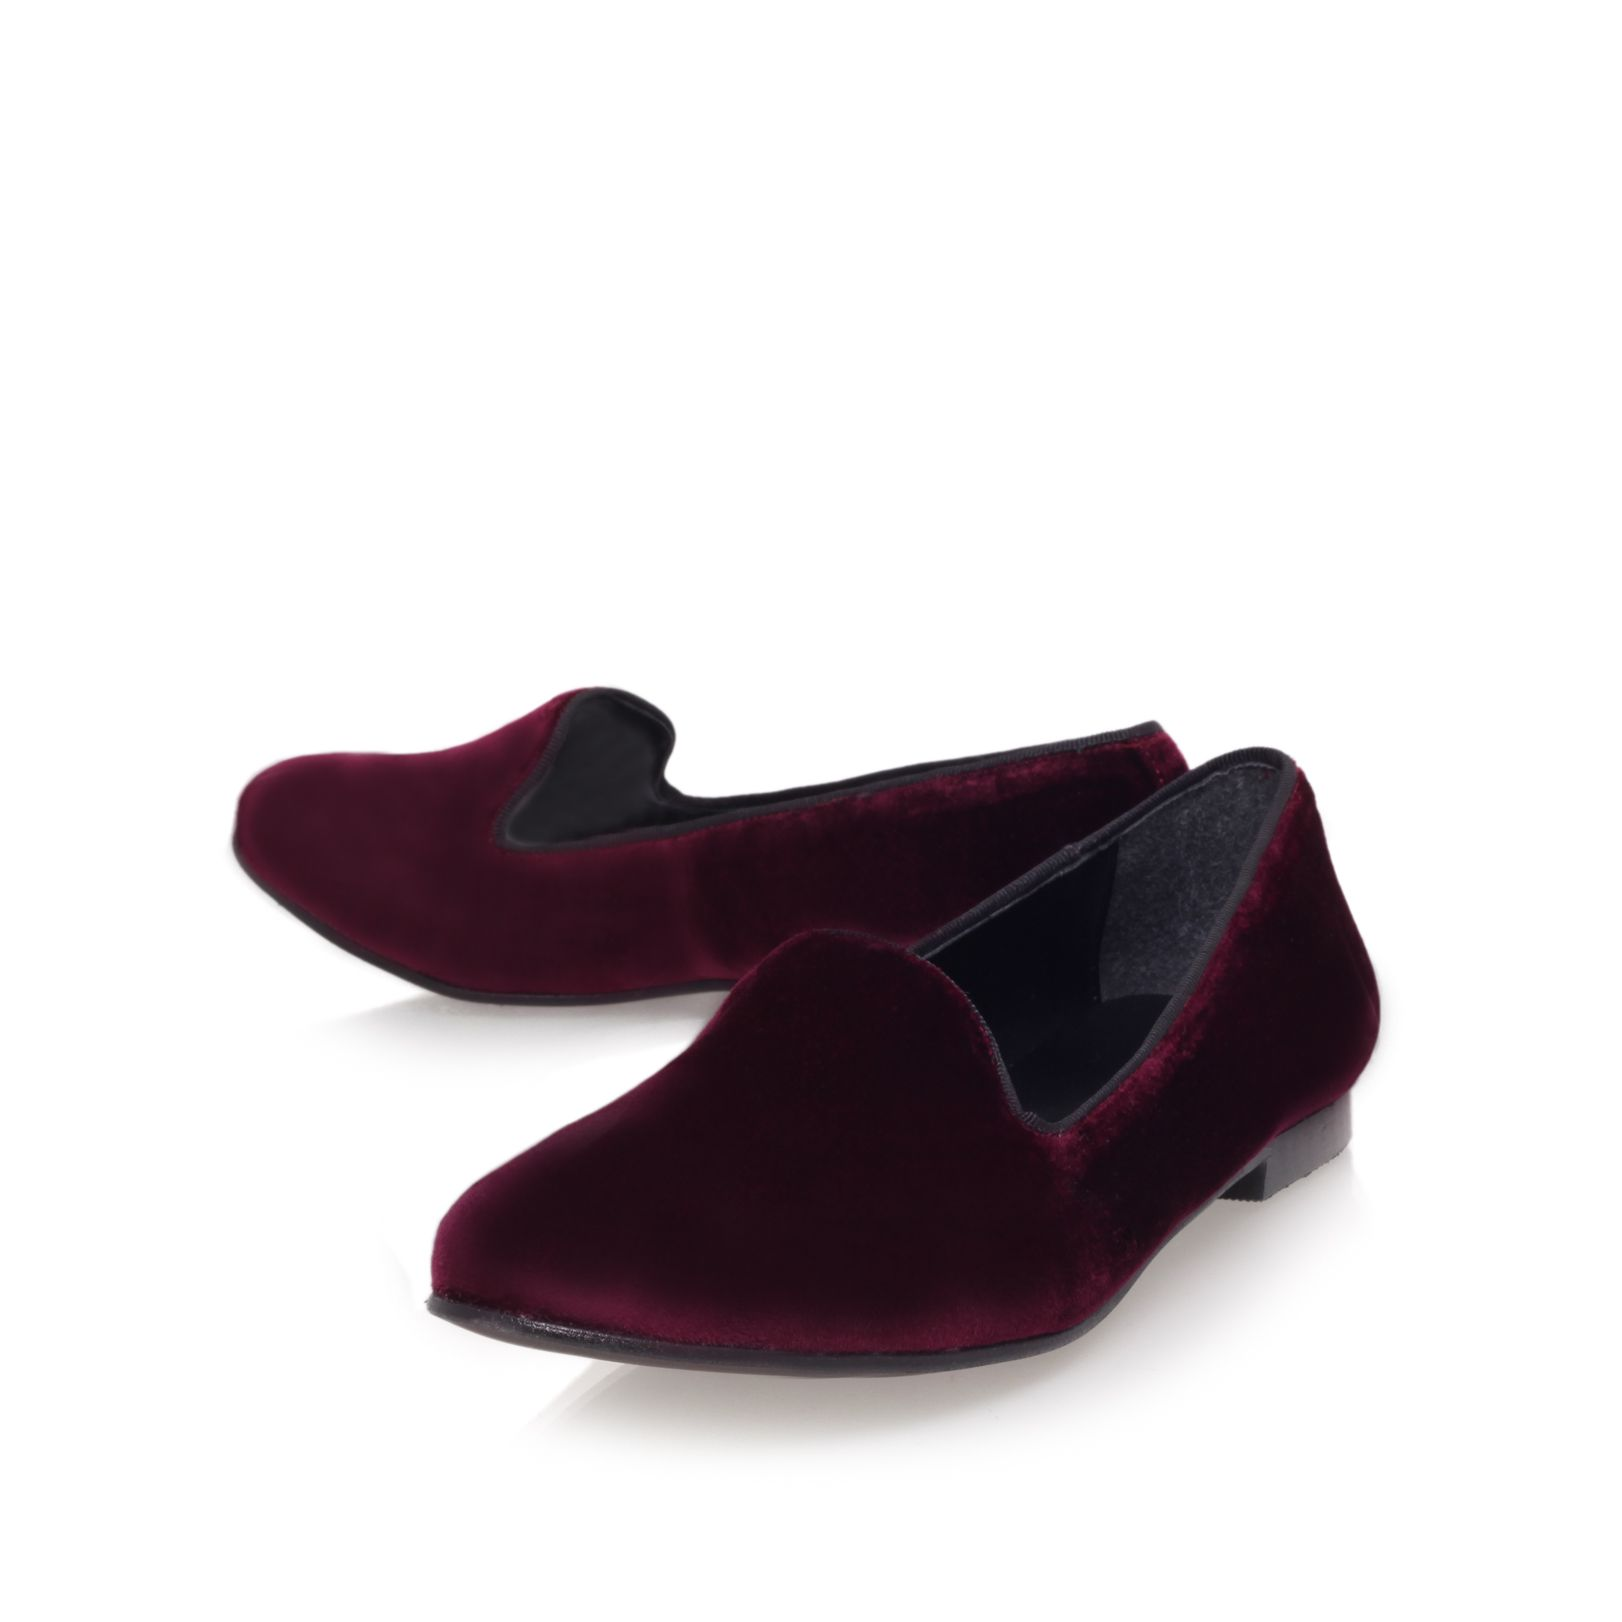 Lexie flat slipper shoes